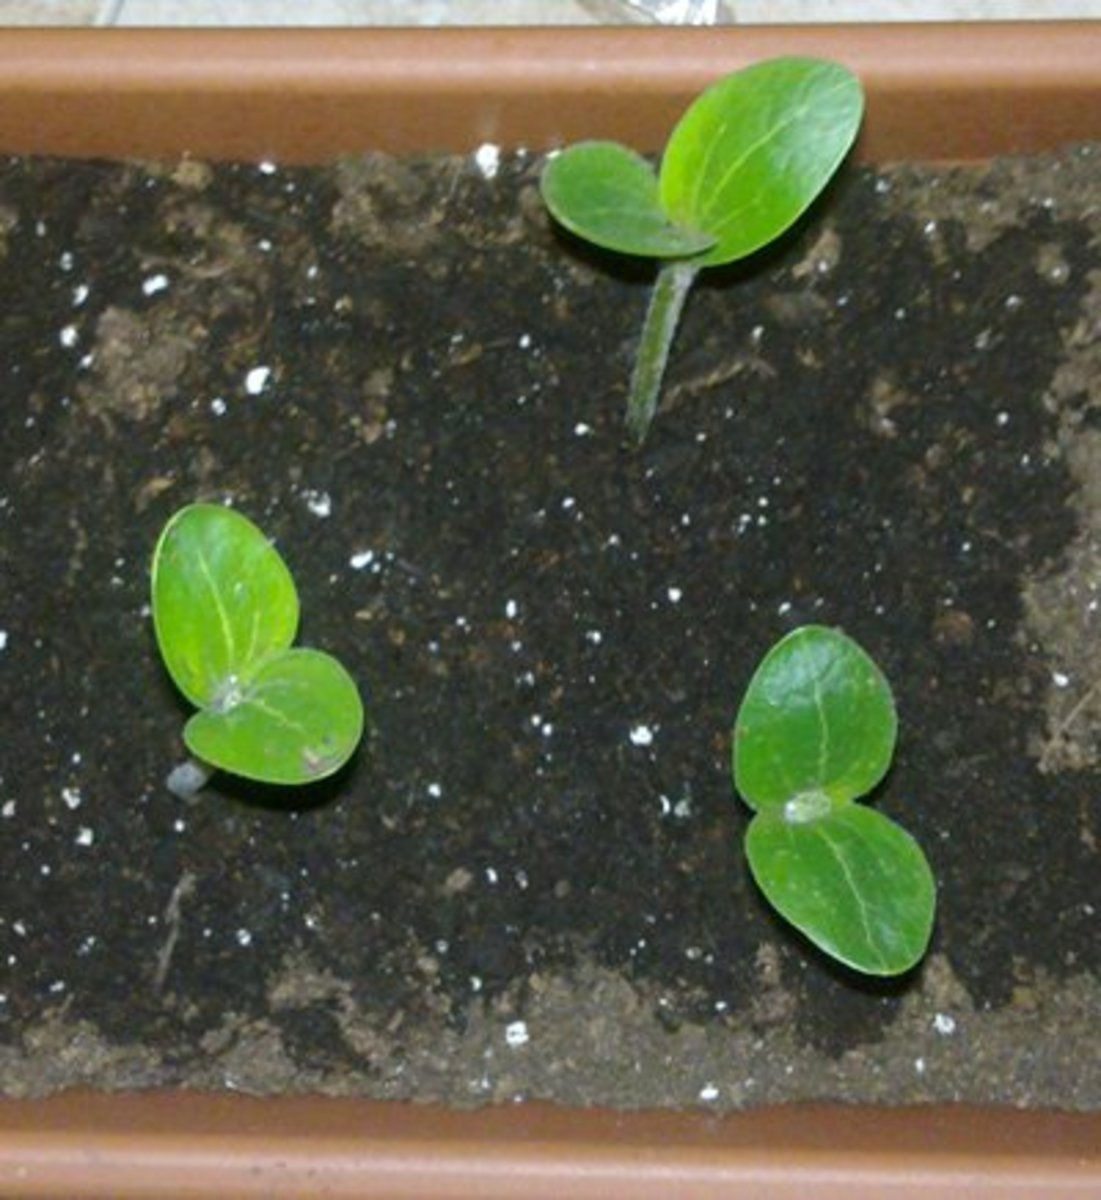 Seedlings with the first two 'leaves' or cotyledons